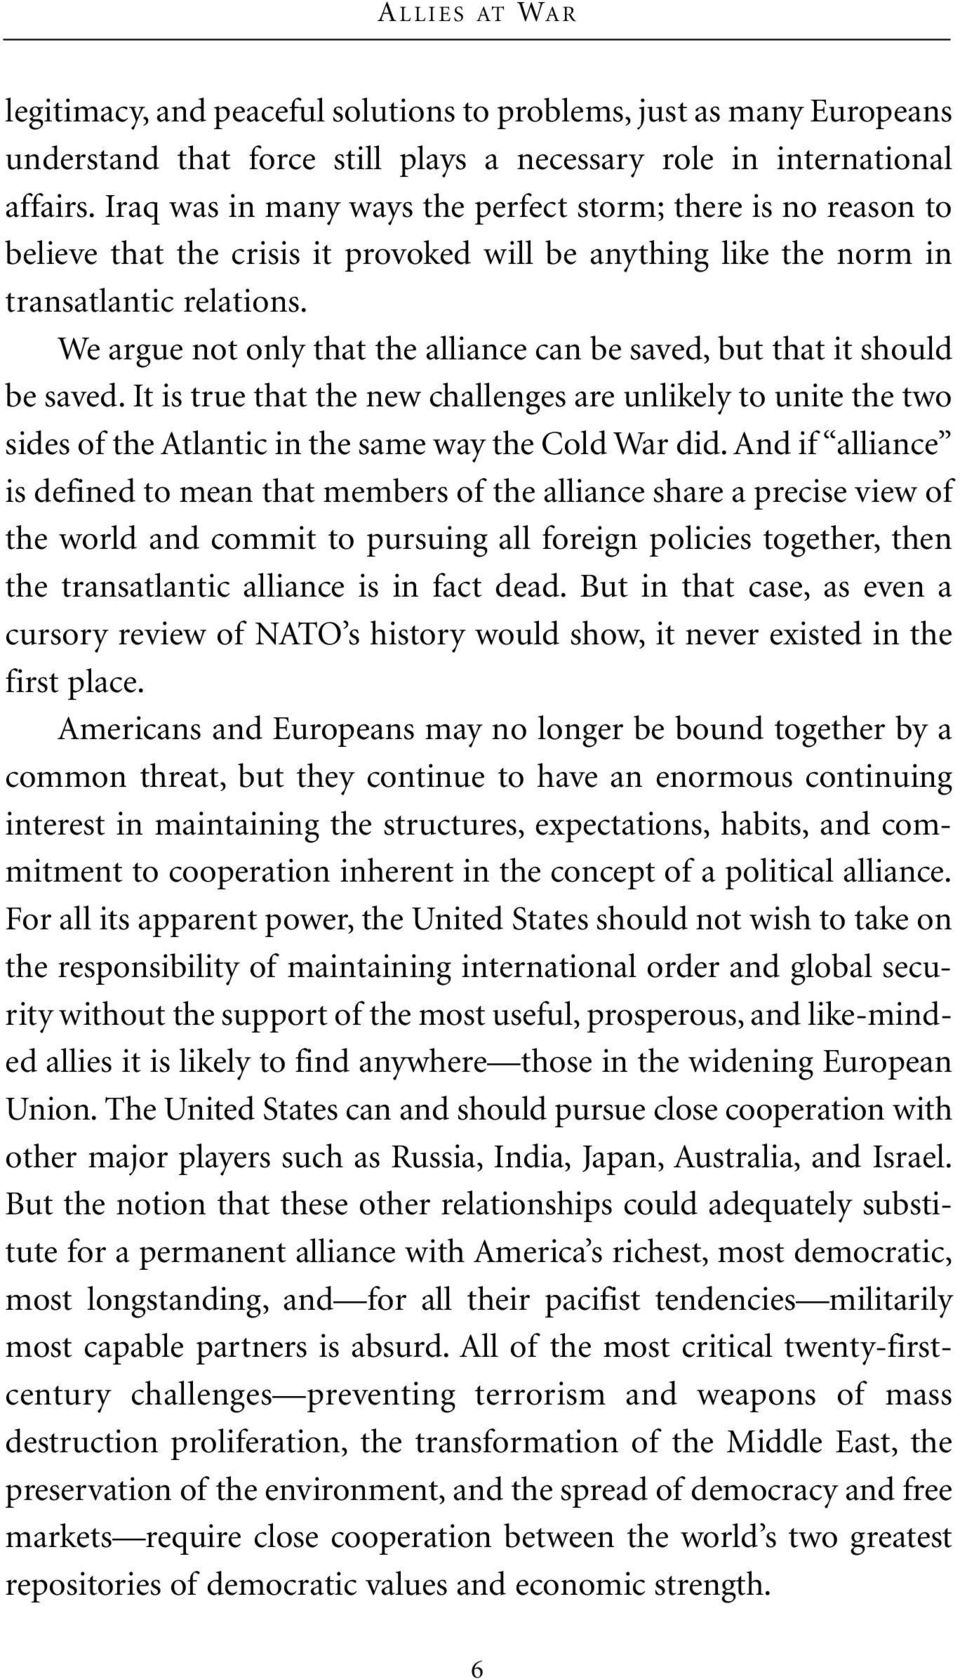 We argue not only that the alliance can be saved, but that it should be saved. It is true that the new challenges are unlikely to unite the two sides of the Atlantic in the same way the Cold War did.